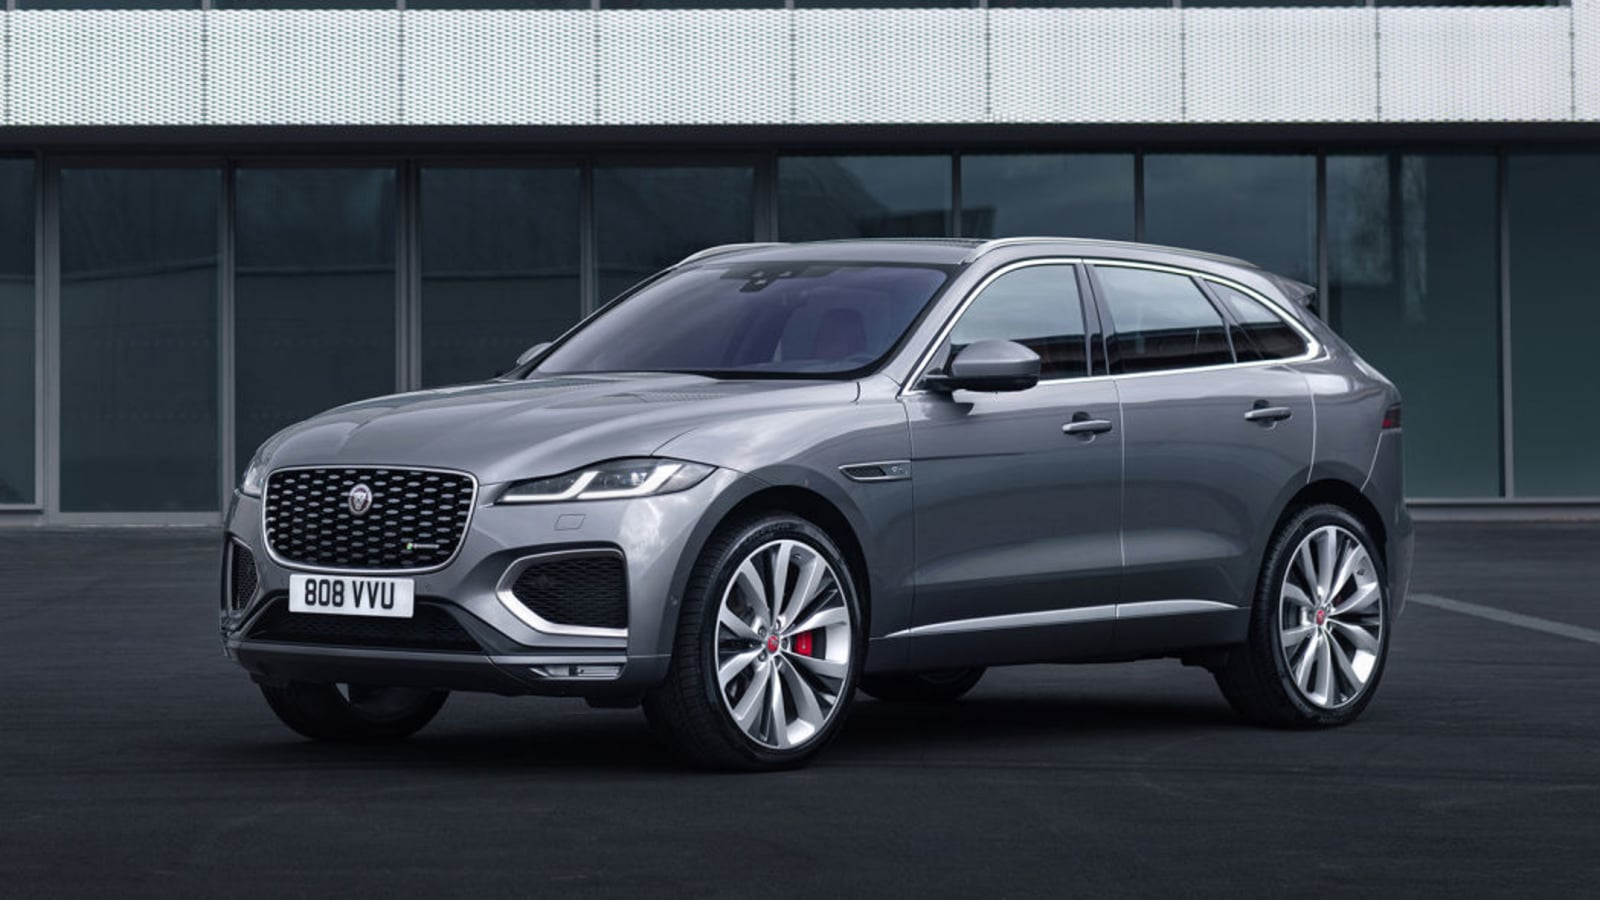 2021 Jaguar F-Pace Specification and Features